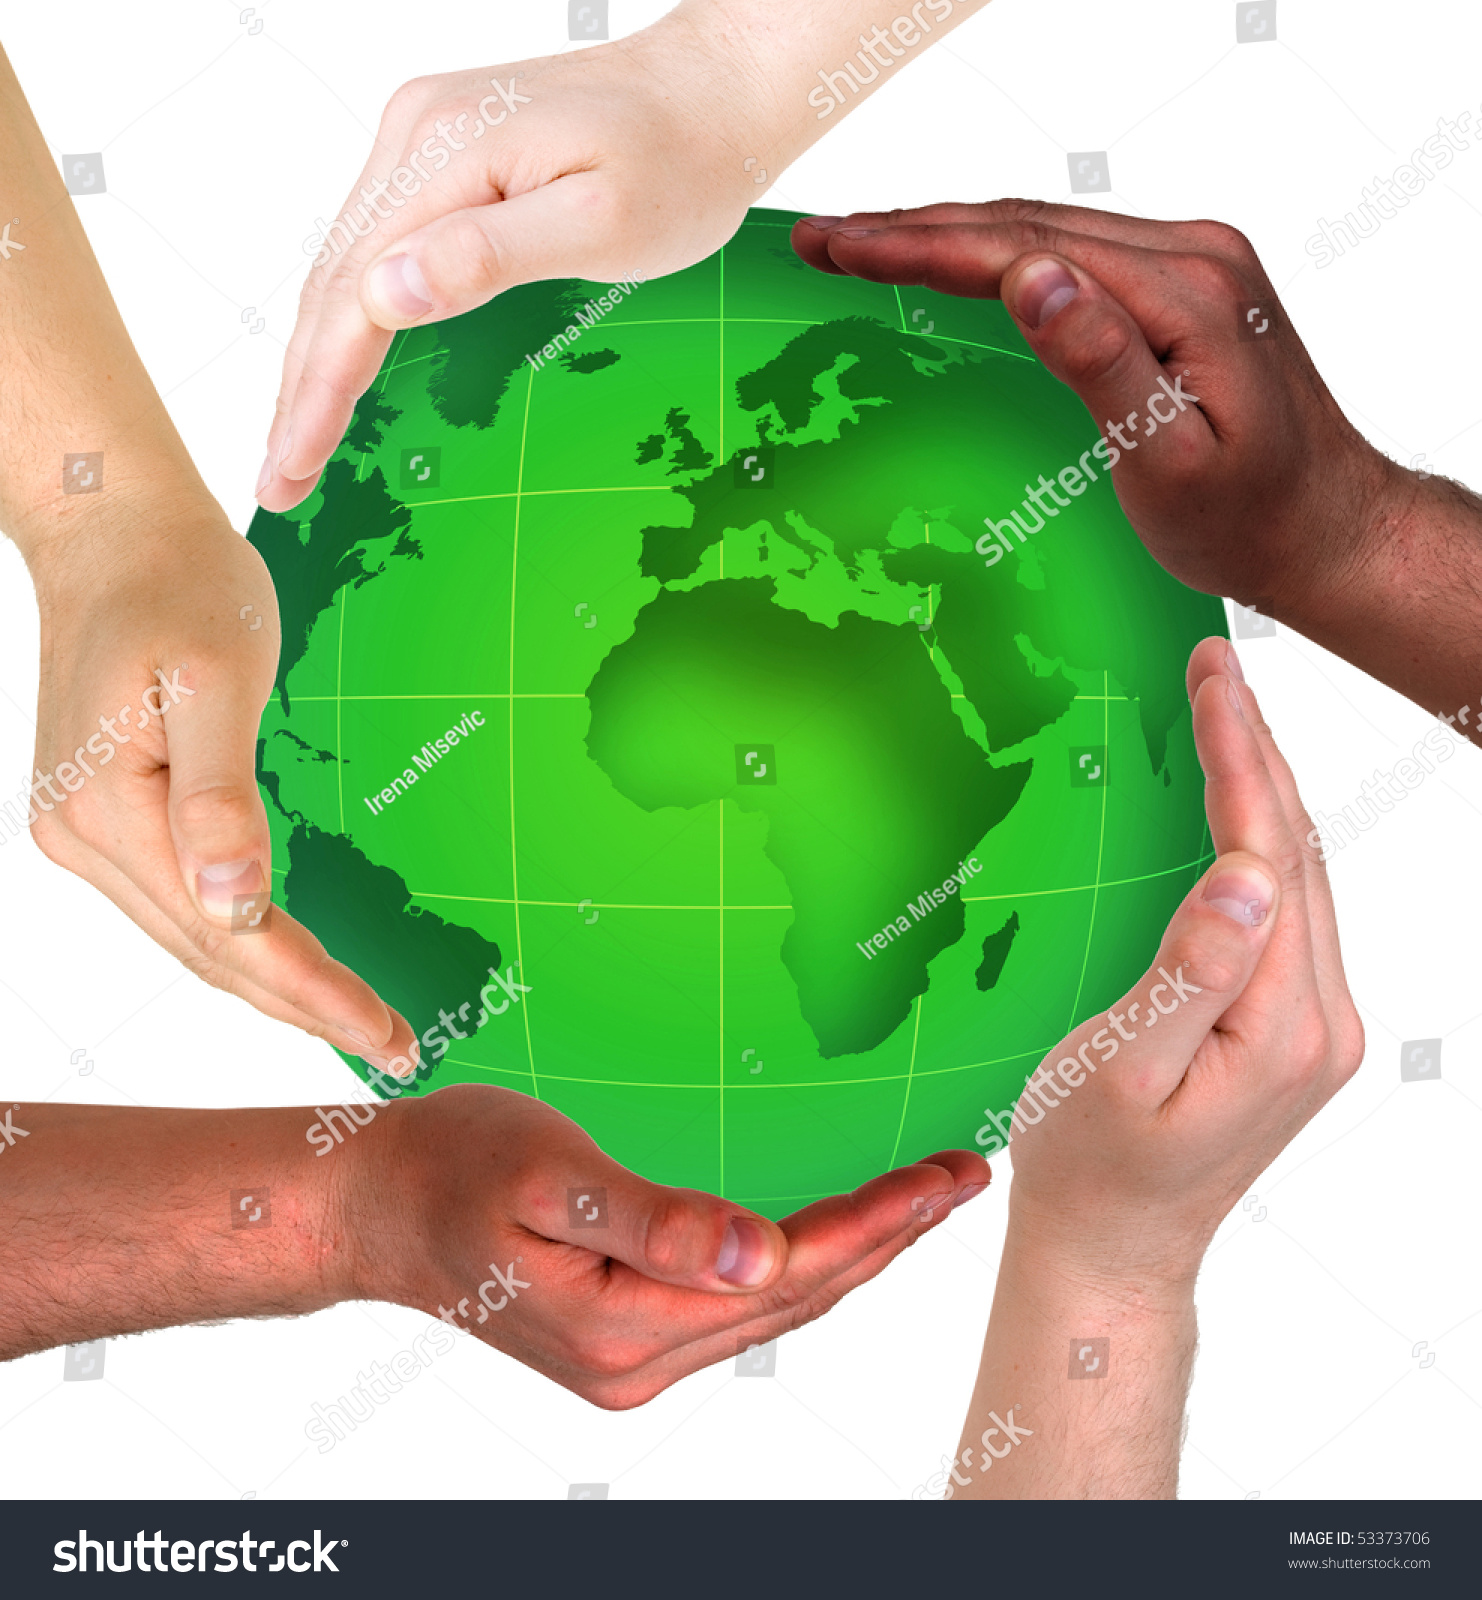 Conceptual safety symbol made hands over stock photo 53373706 conceptual safety symbol made from hands over globe biocorpaavc